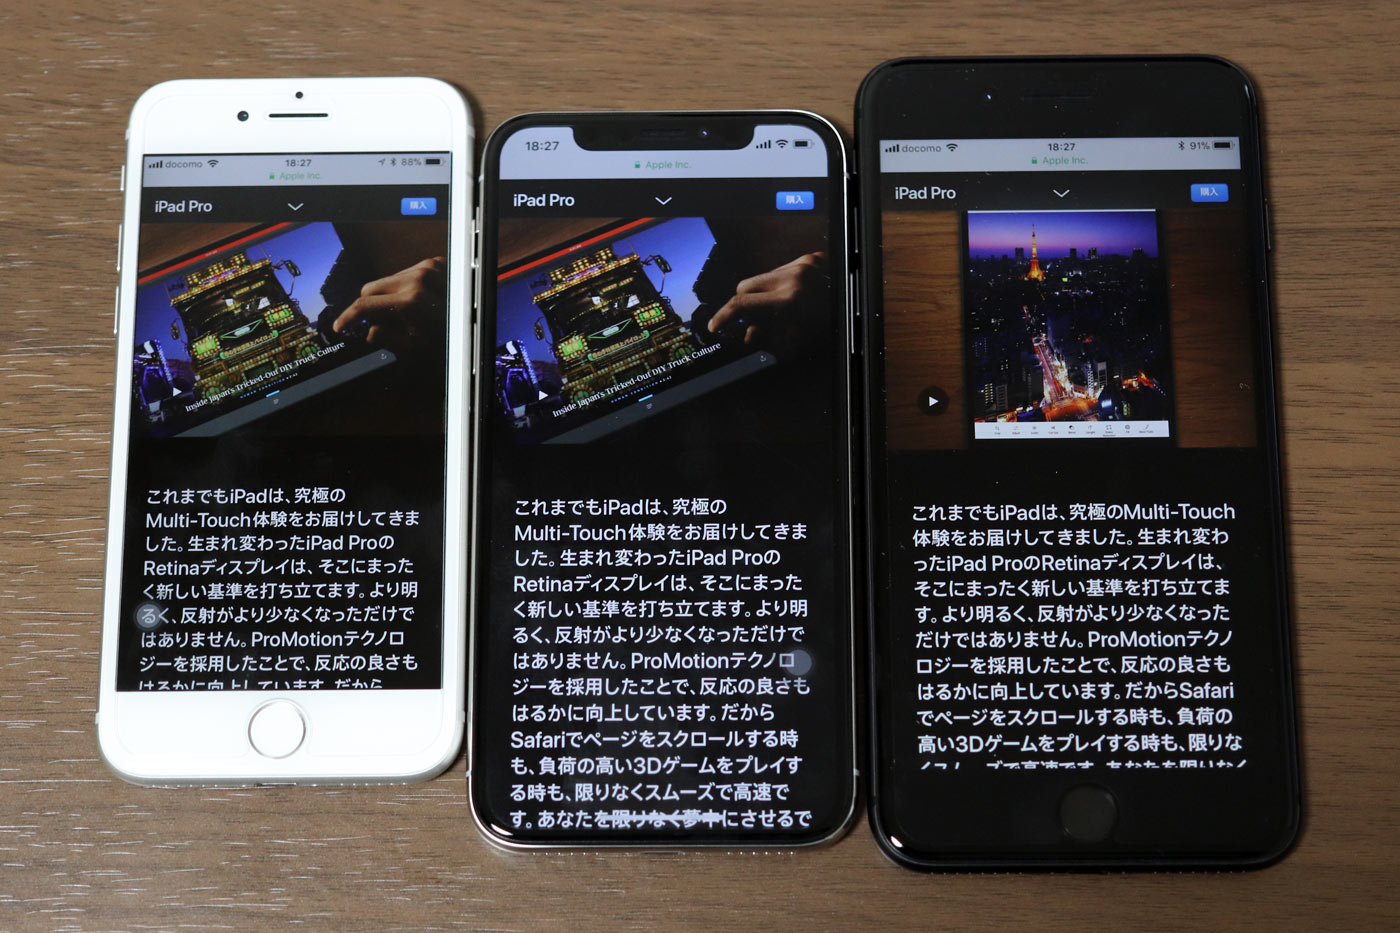 iPhone8 vs iPhoneX vs iPhone8 Plus 画面の大きさ1